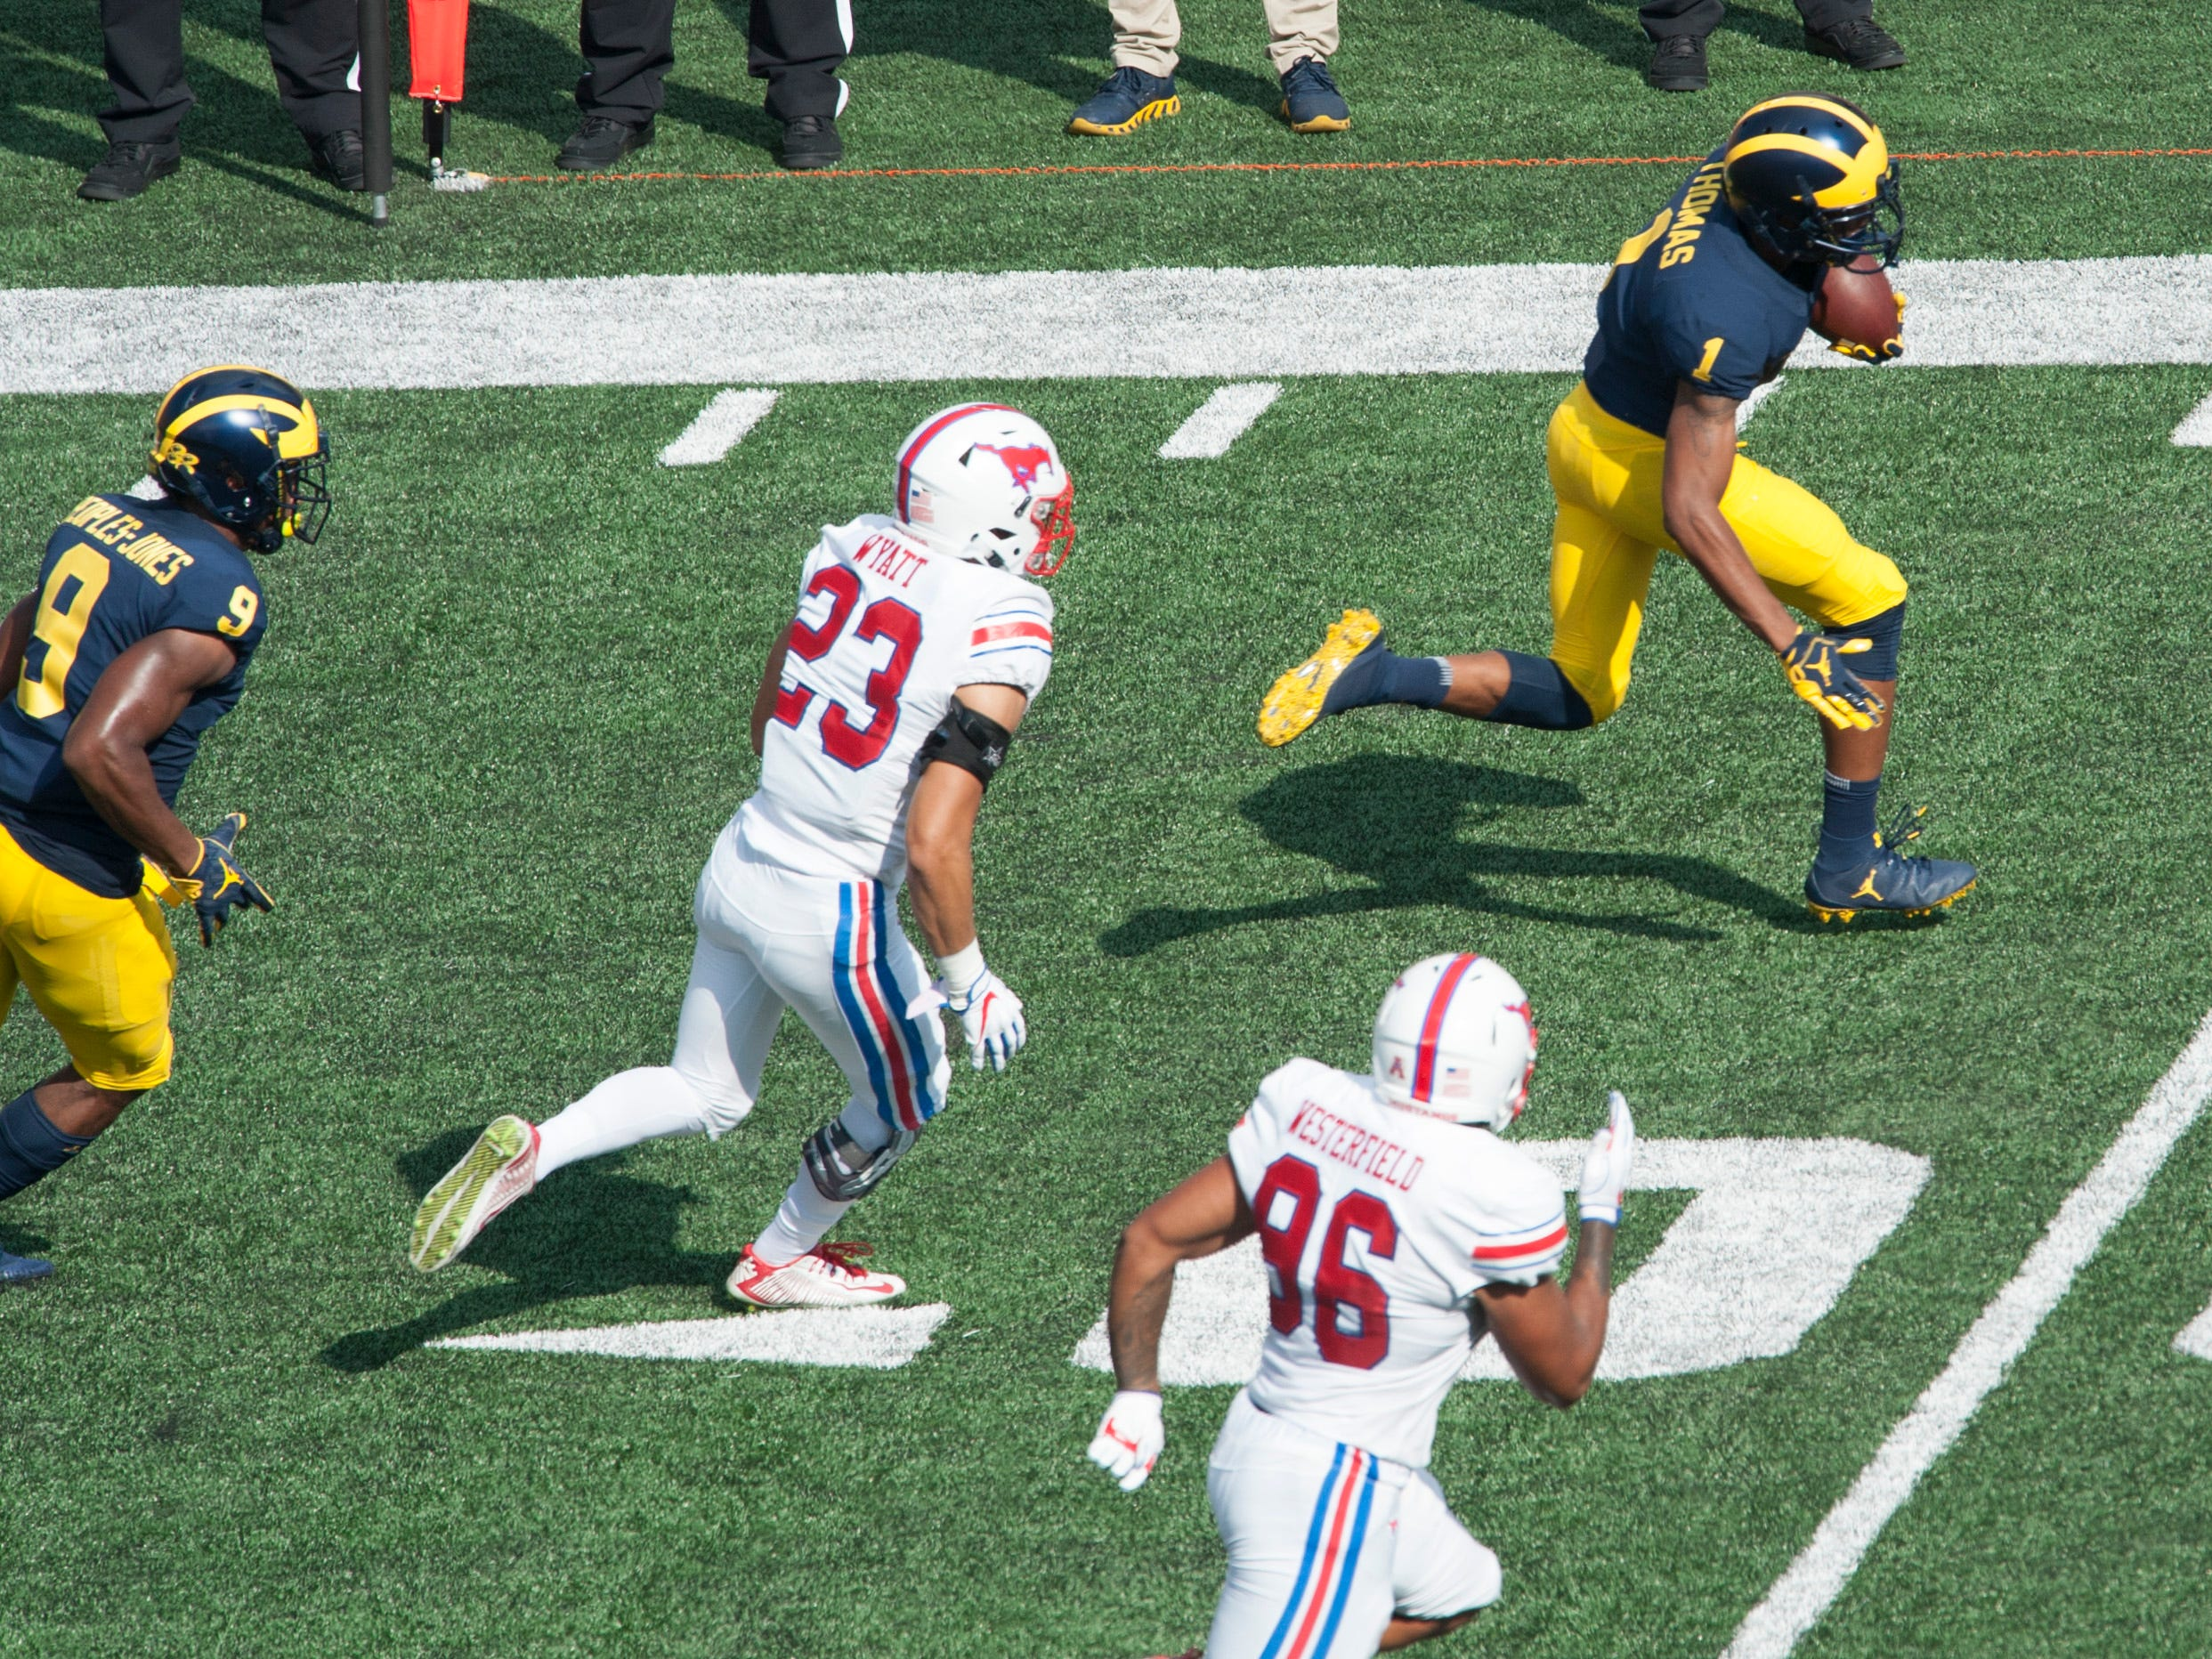 Michigan's  Ambry Thomas runs for a first down on a sweep play in the first quarter.